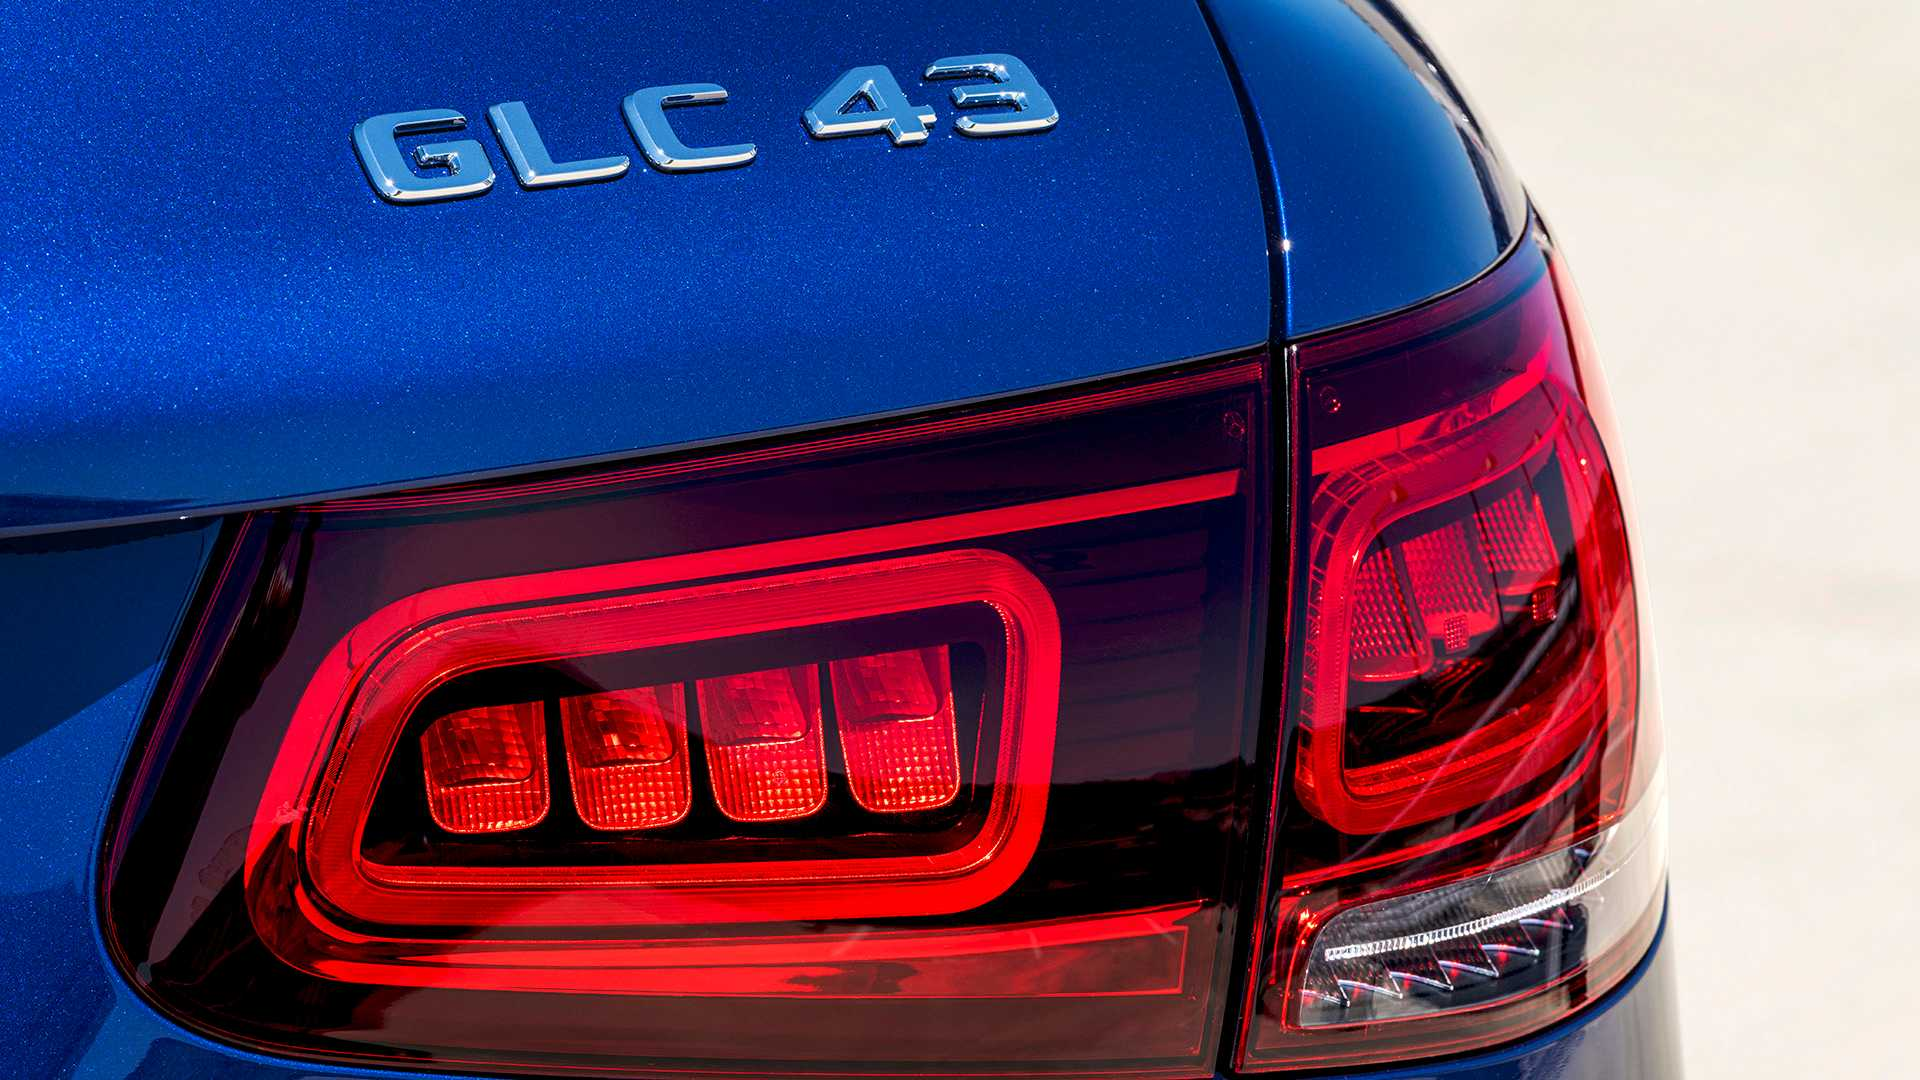 2020 Mercedes-AMG GLC 43 4MATIC Tail Light Wallpapers (12)